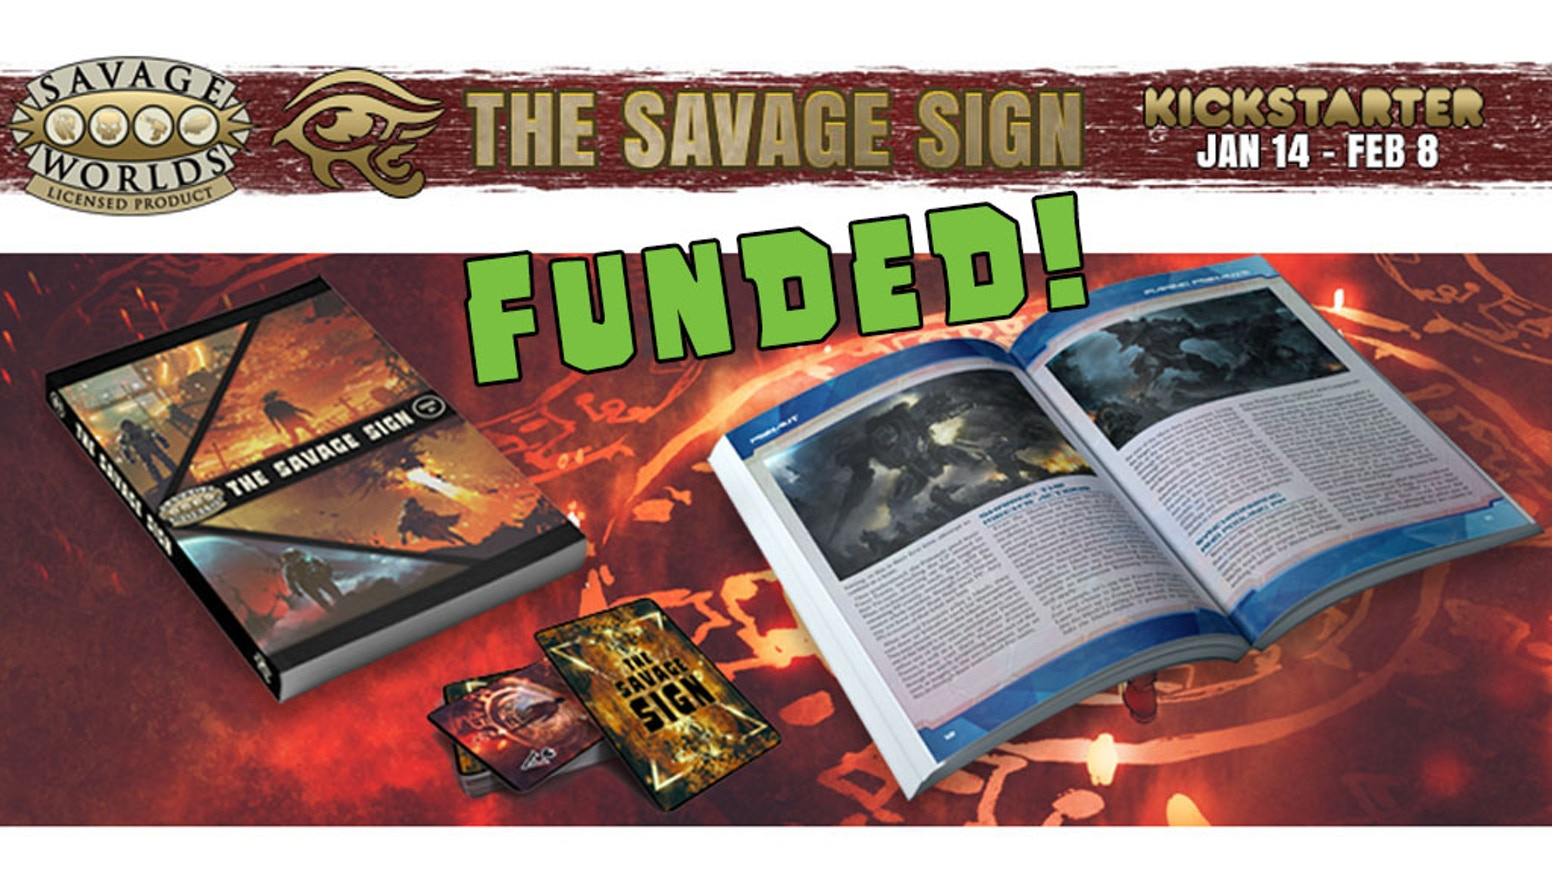 A licensed Savage Worlds publication containing new Comics, Creature Features, Fiction, Savage Tales, Savage Settings, Maps, and more!